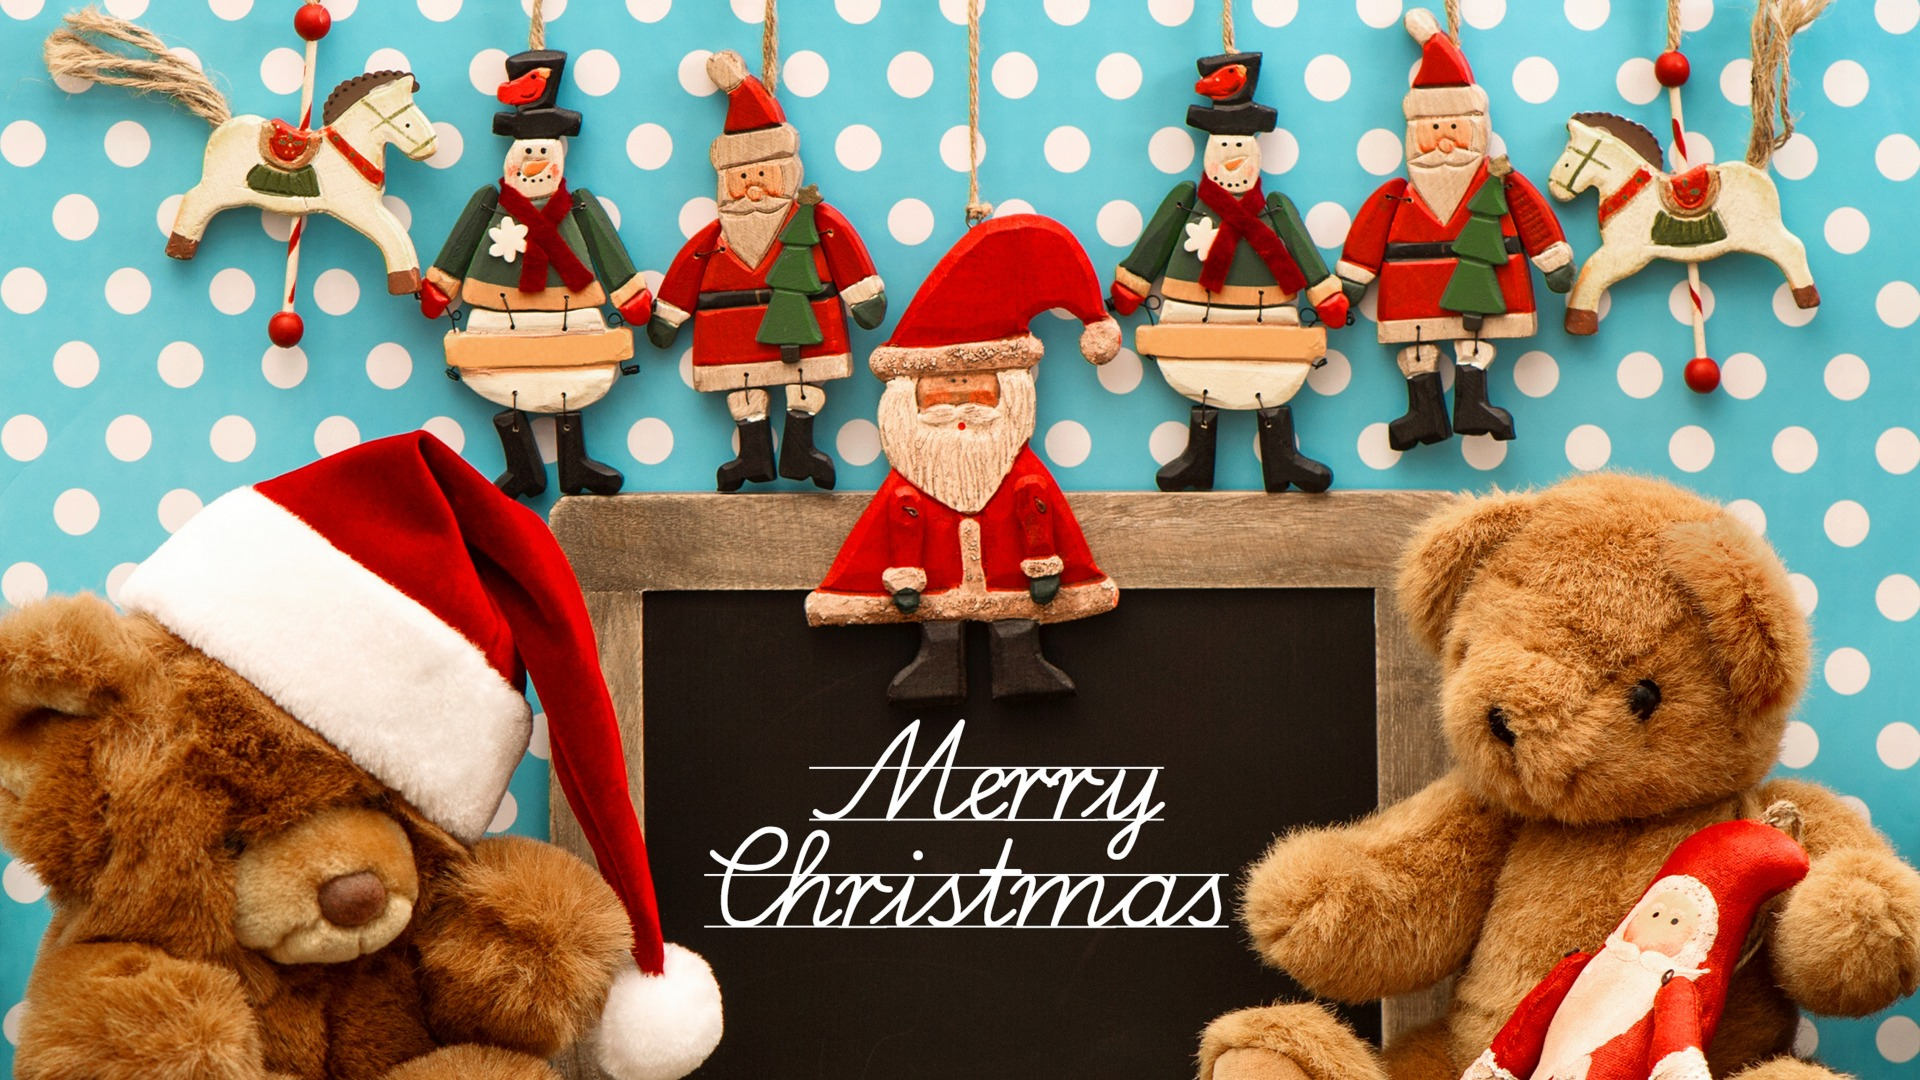 Download-balls-decoration-holiday-New-Year-Christmas-Christmas-New-Year-teddy-bear-wallpaper-wp3804809